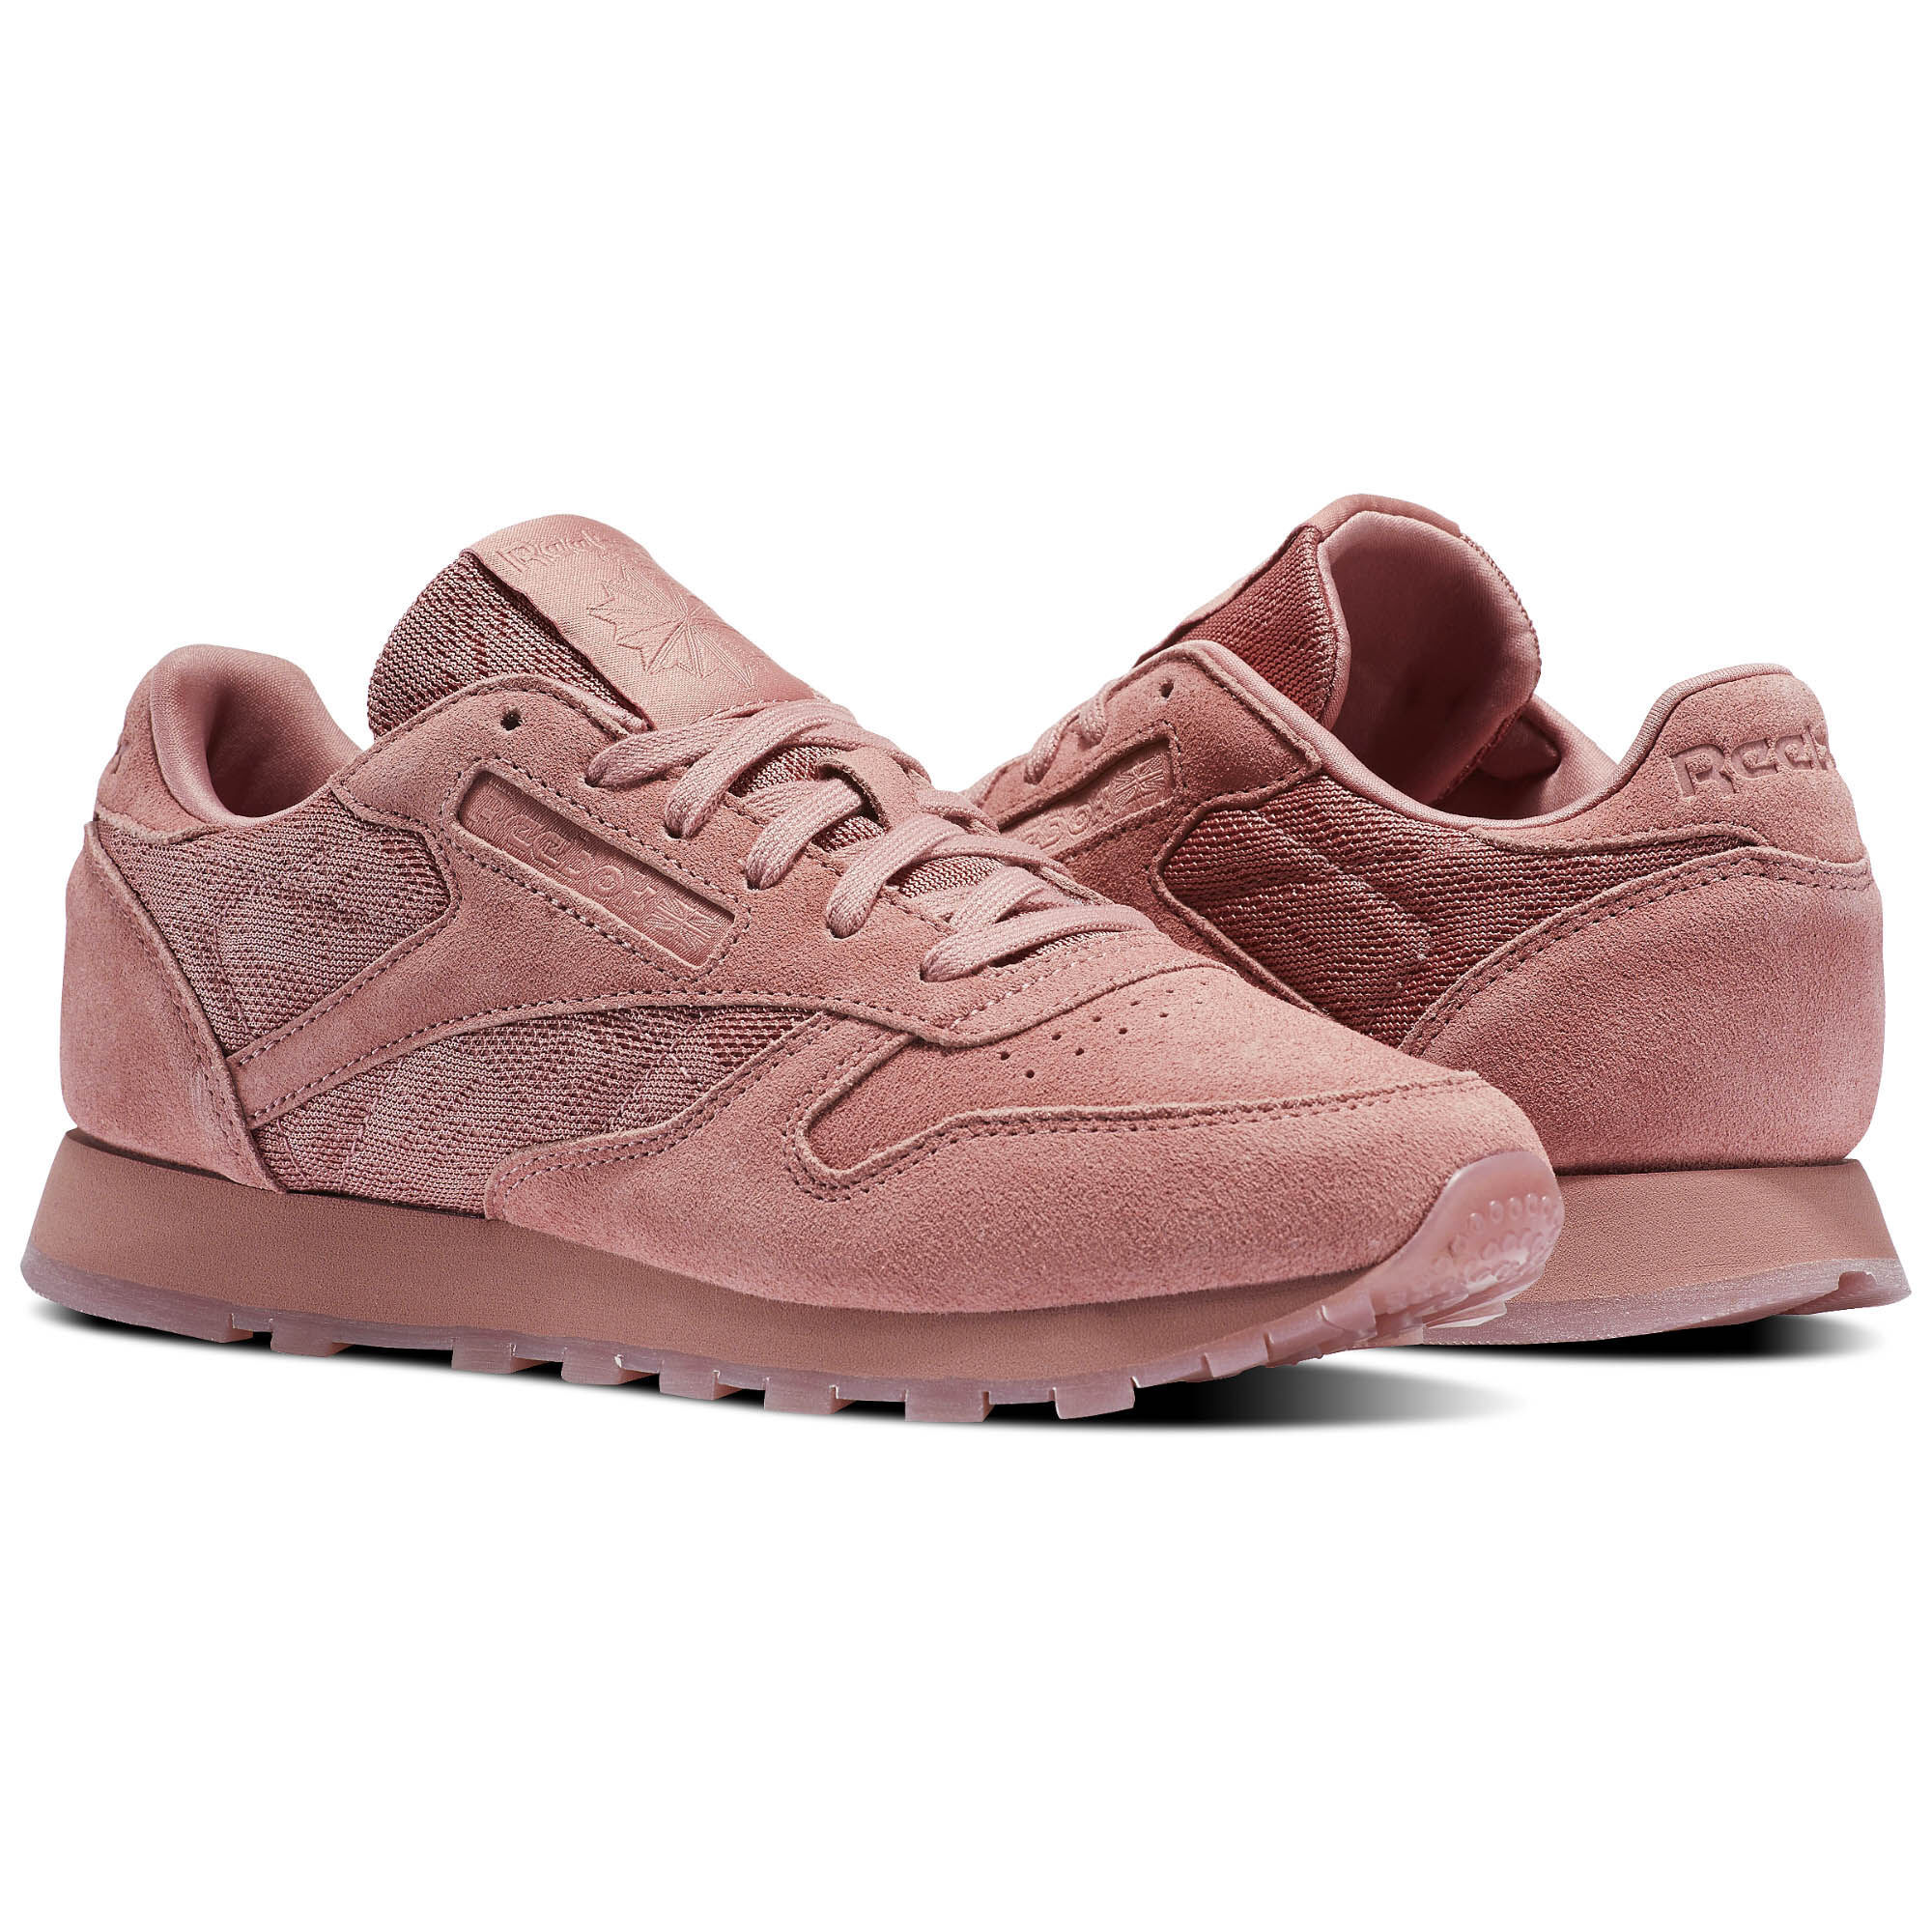 01b38355232a3 ... italy suede options reebok classic leather lace sandy rose white bs6523  181a3 6a719